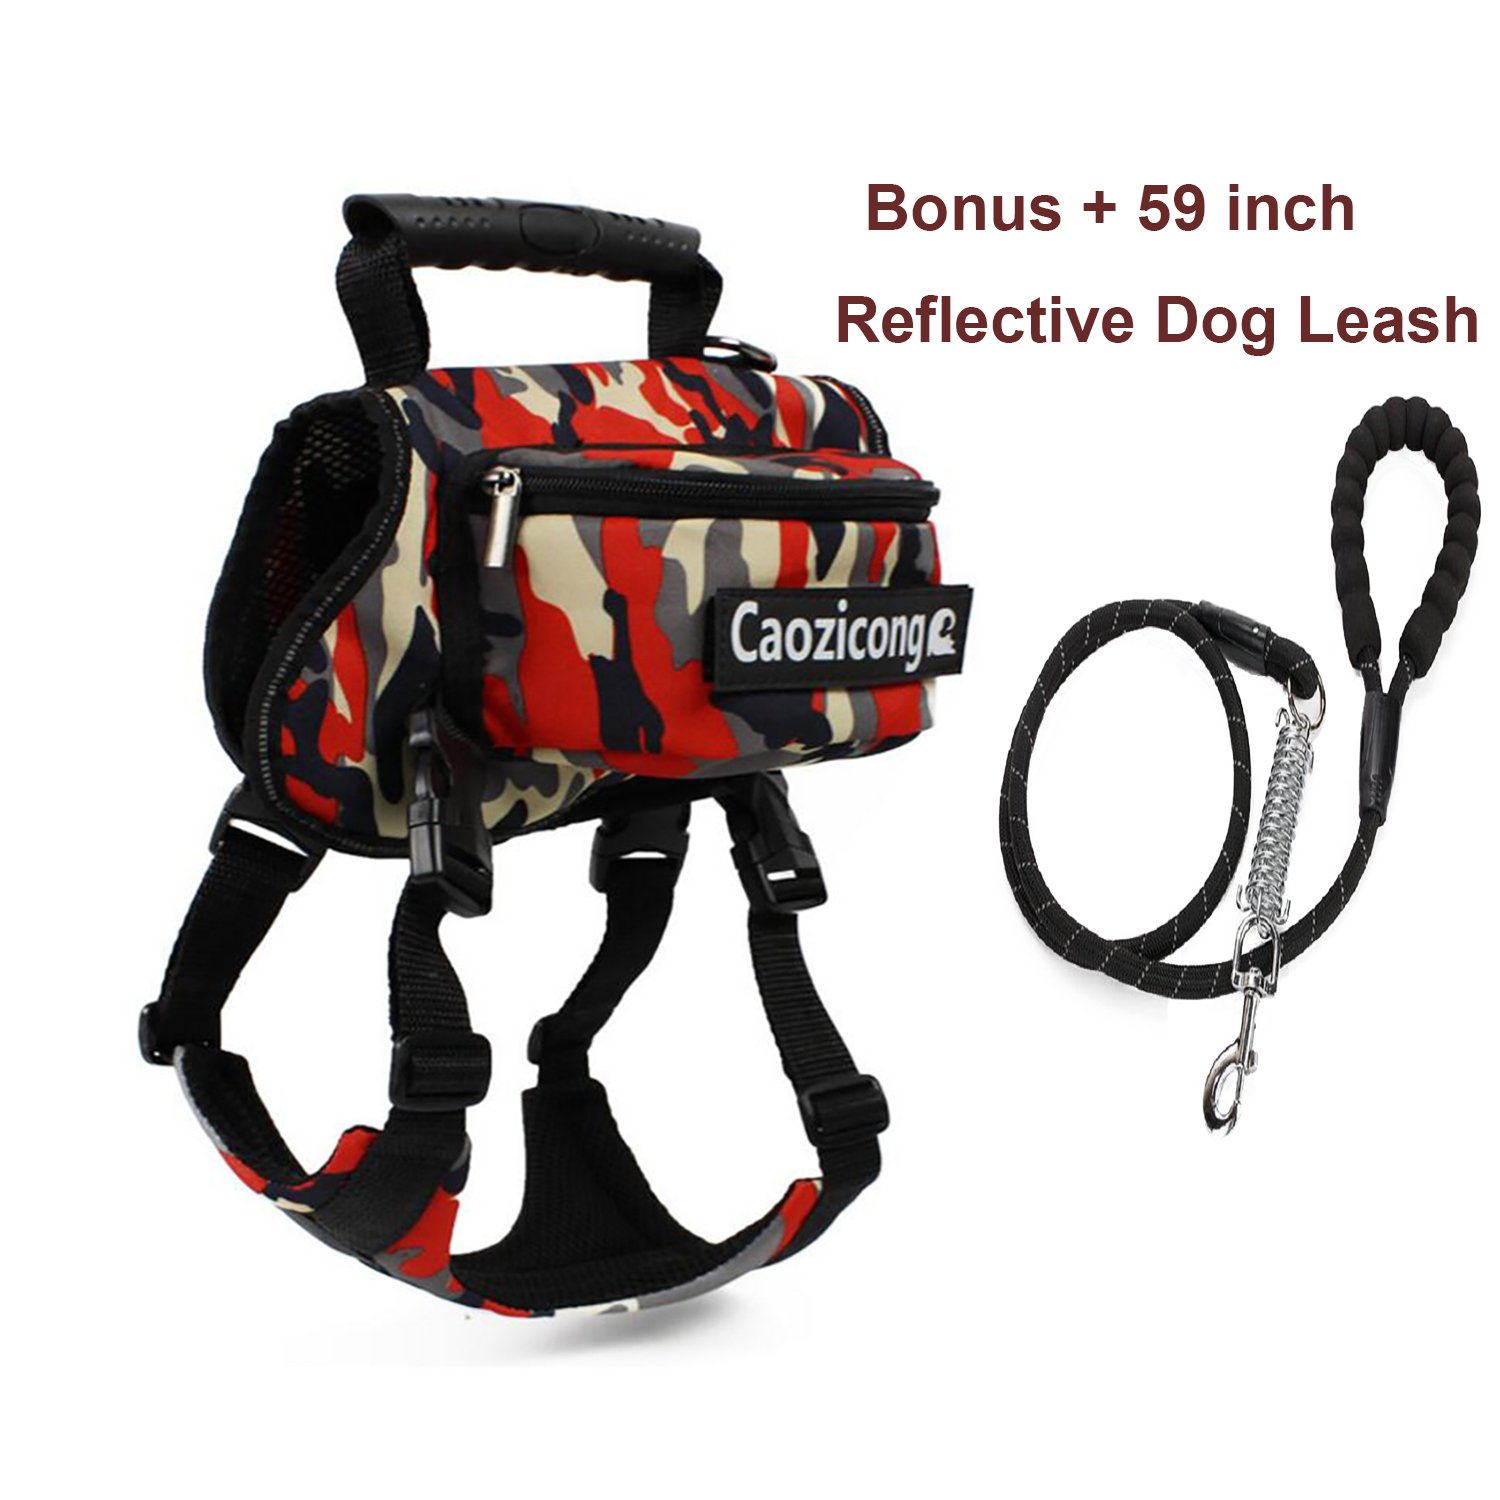 NeatoTek Adjustable Service Dog Supply Backpack Saddle Bag Large Capacity Tripper Hound Bag for Camping Hiking Training for Large and Extra Large Dog with Dog Reflective Leash